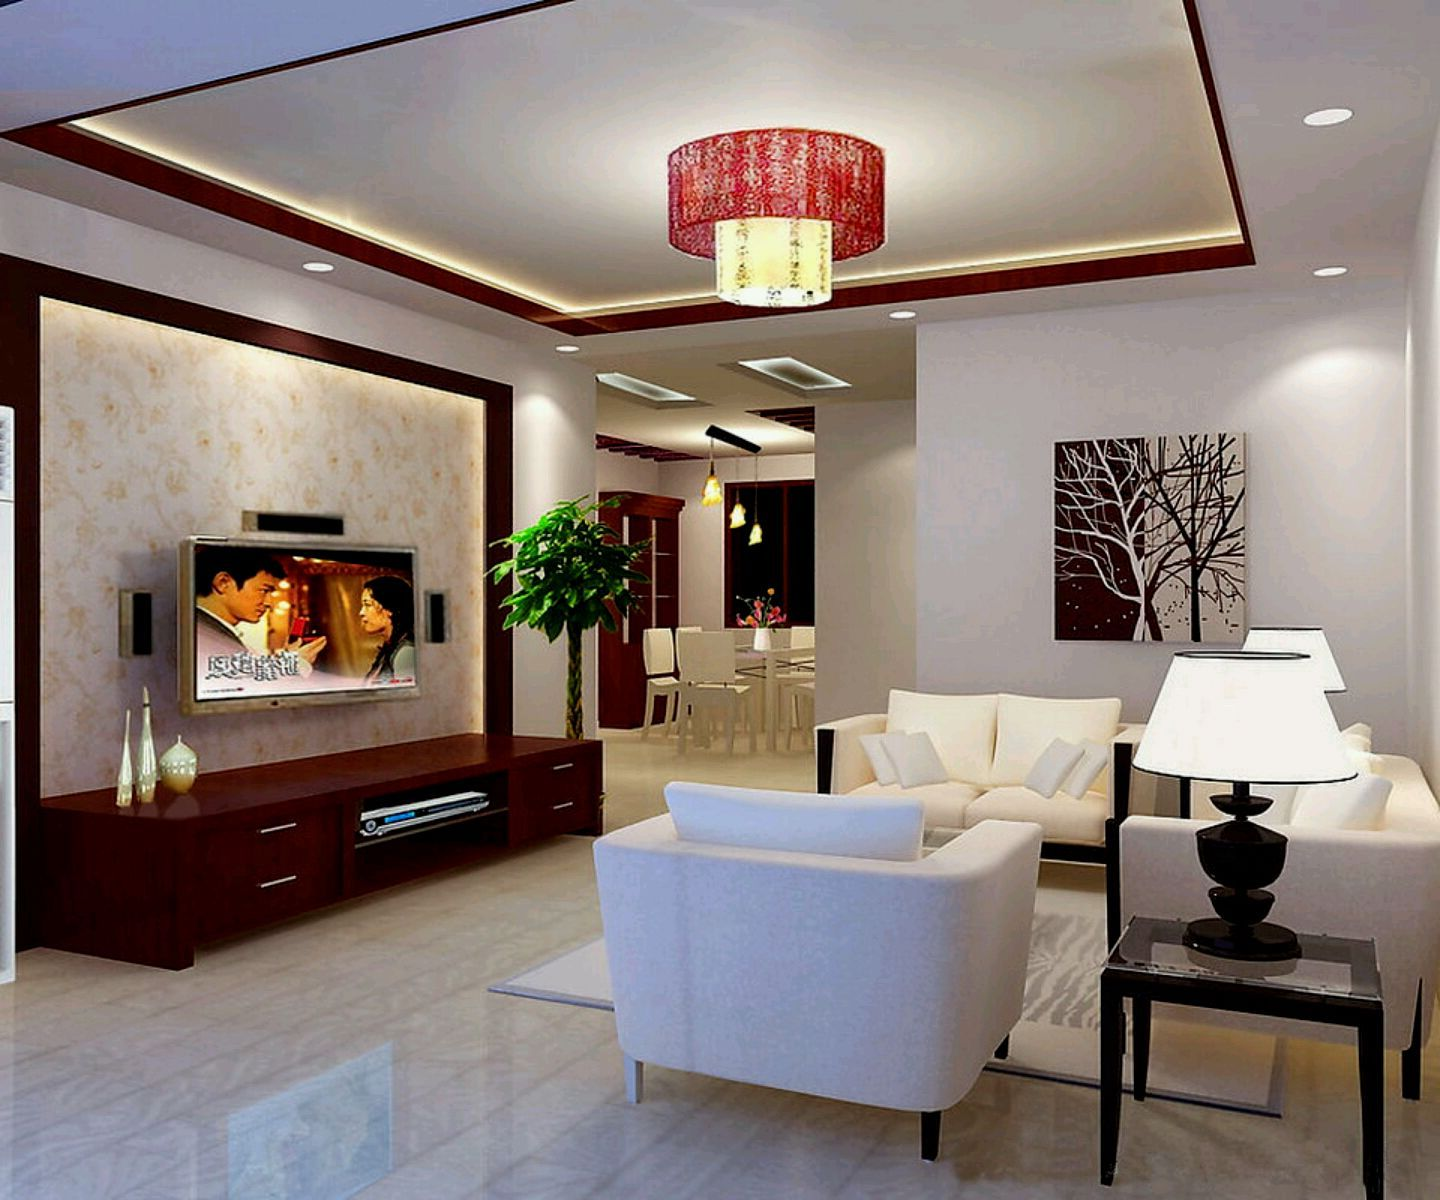 Ceiling design for drawing room in pakistan ceiling for Room design pakistan